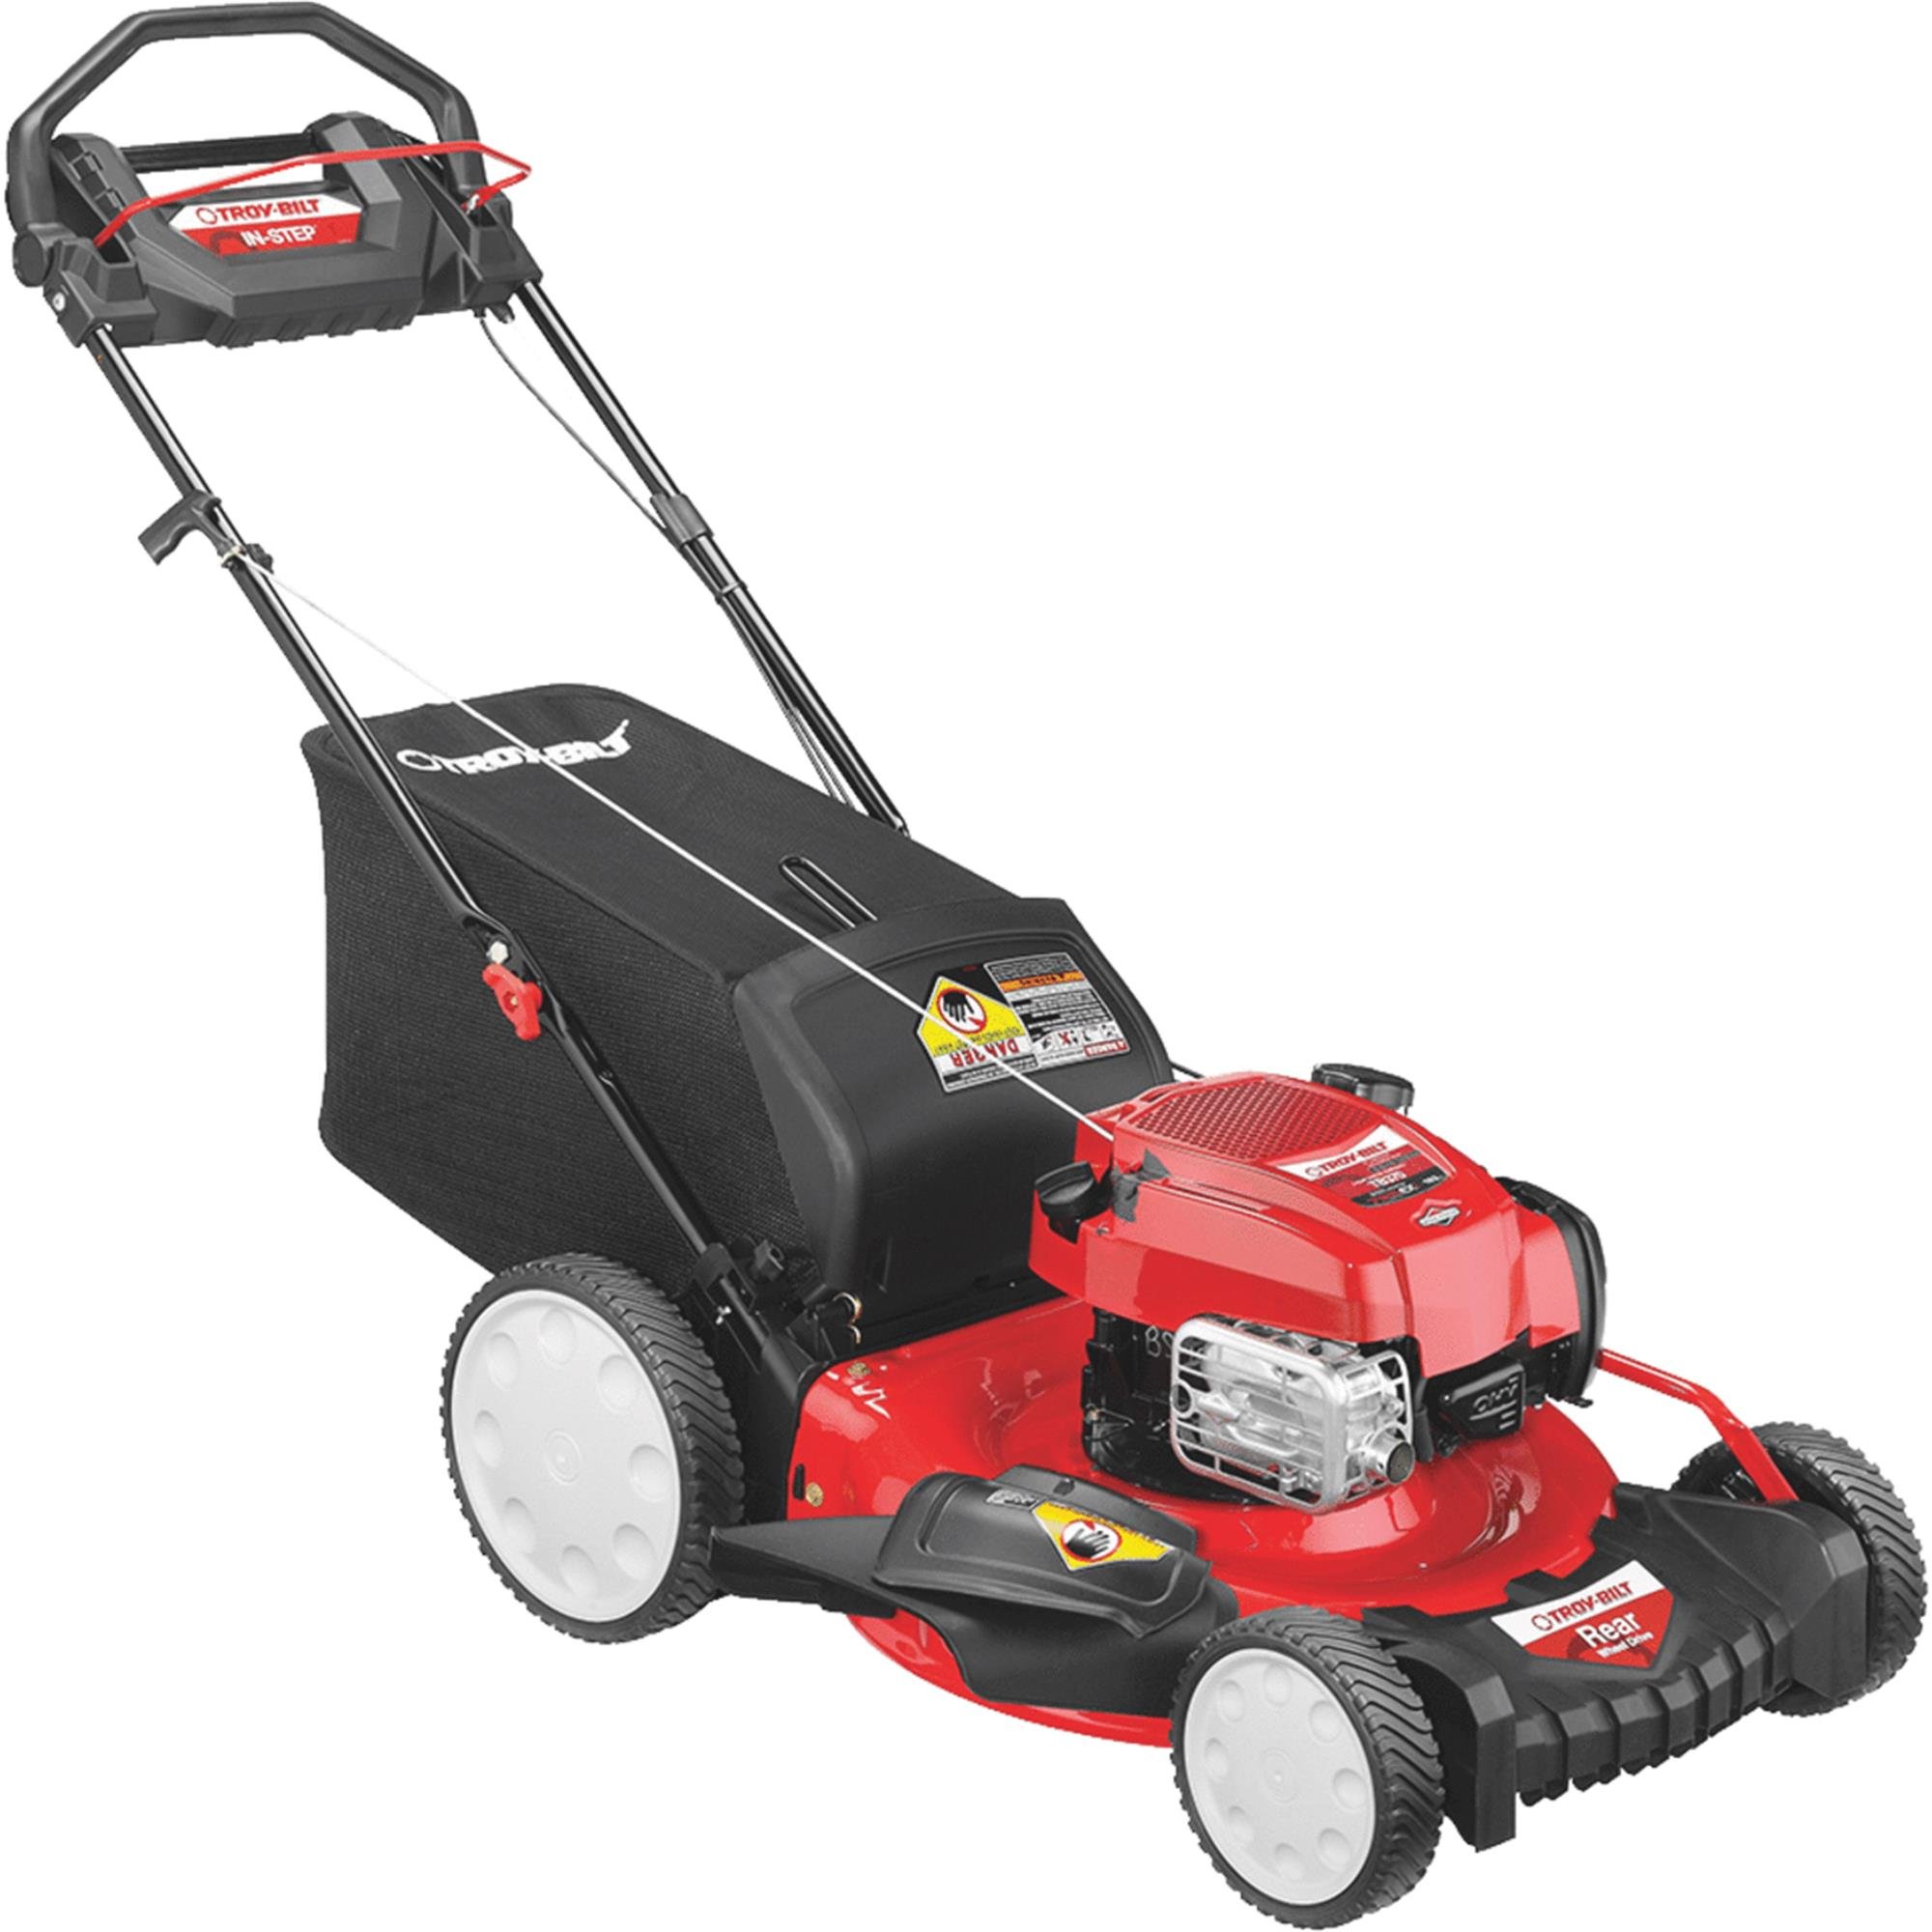 Troy-Bilt TB370 21 In. High Wheel Rear Wheel Drive Self-Propelled Gas Lawn Mower by MTD PRODUCTS INC